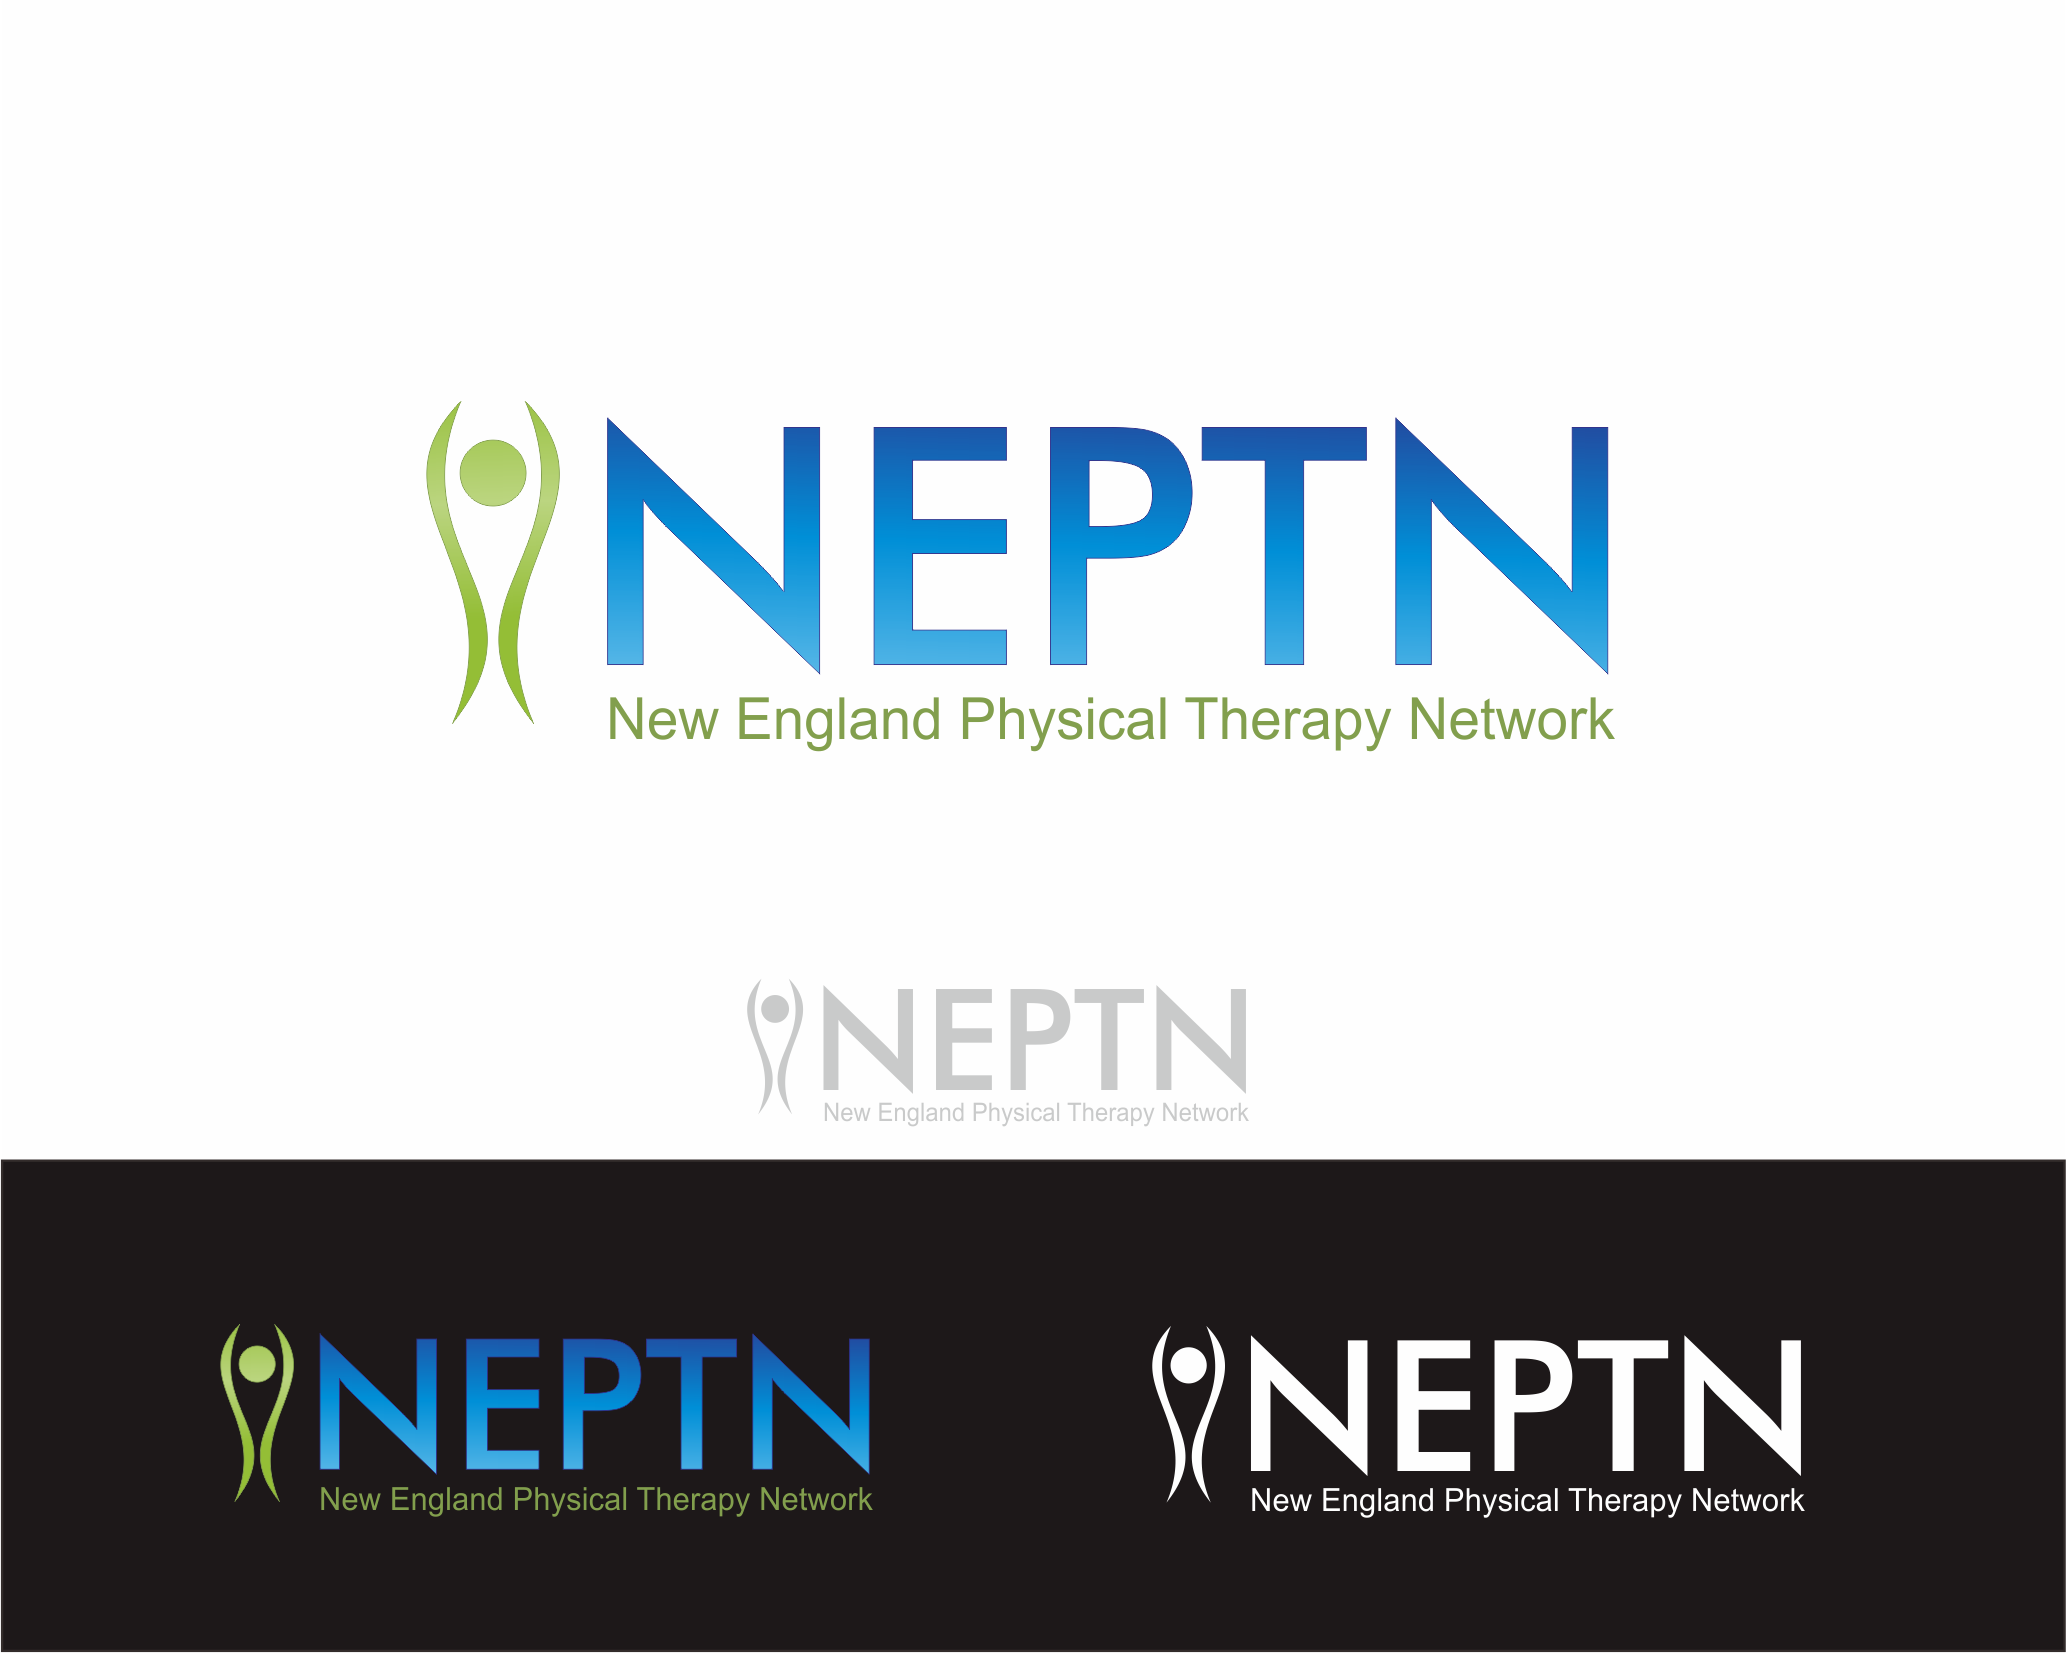 Logo Design by Achmad Zakiyuddin - Entry No. 46 in the Logo Design Contest Fun Logo Design for NEPTN - New England Physical Therapy Network.